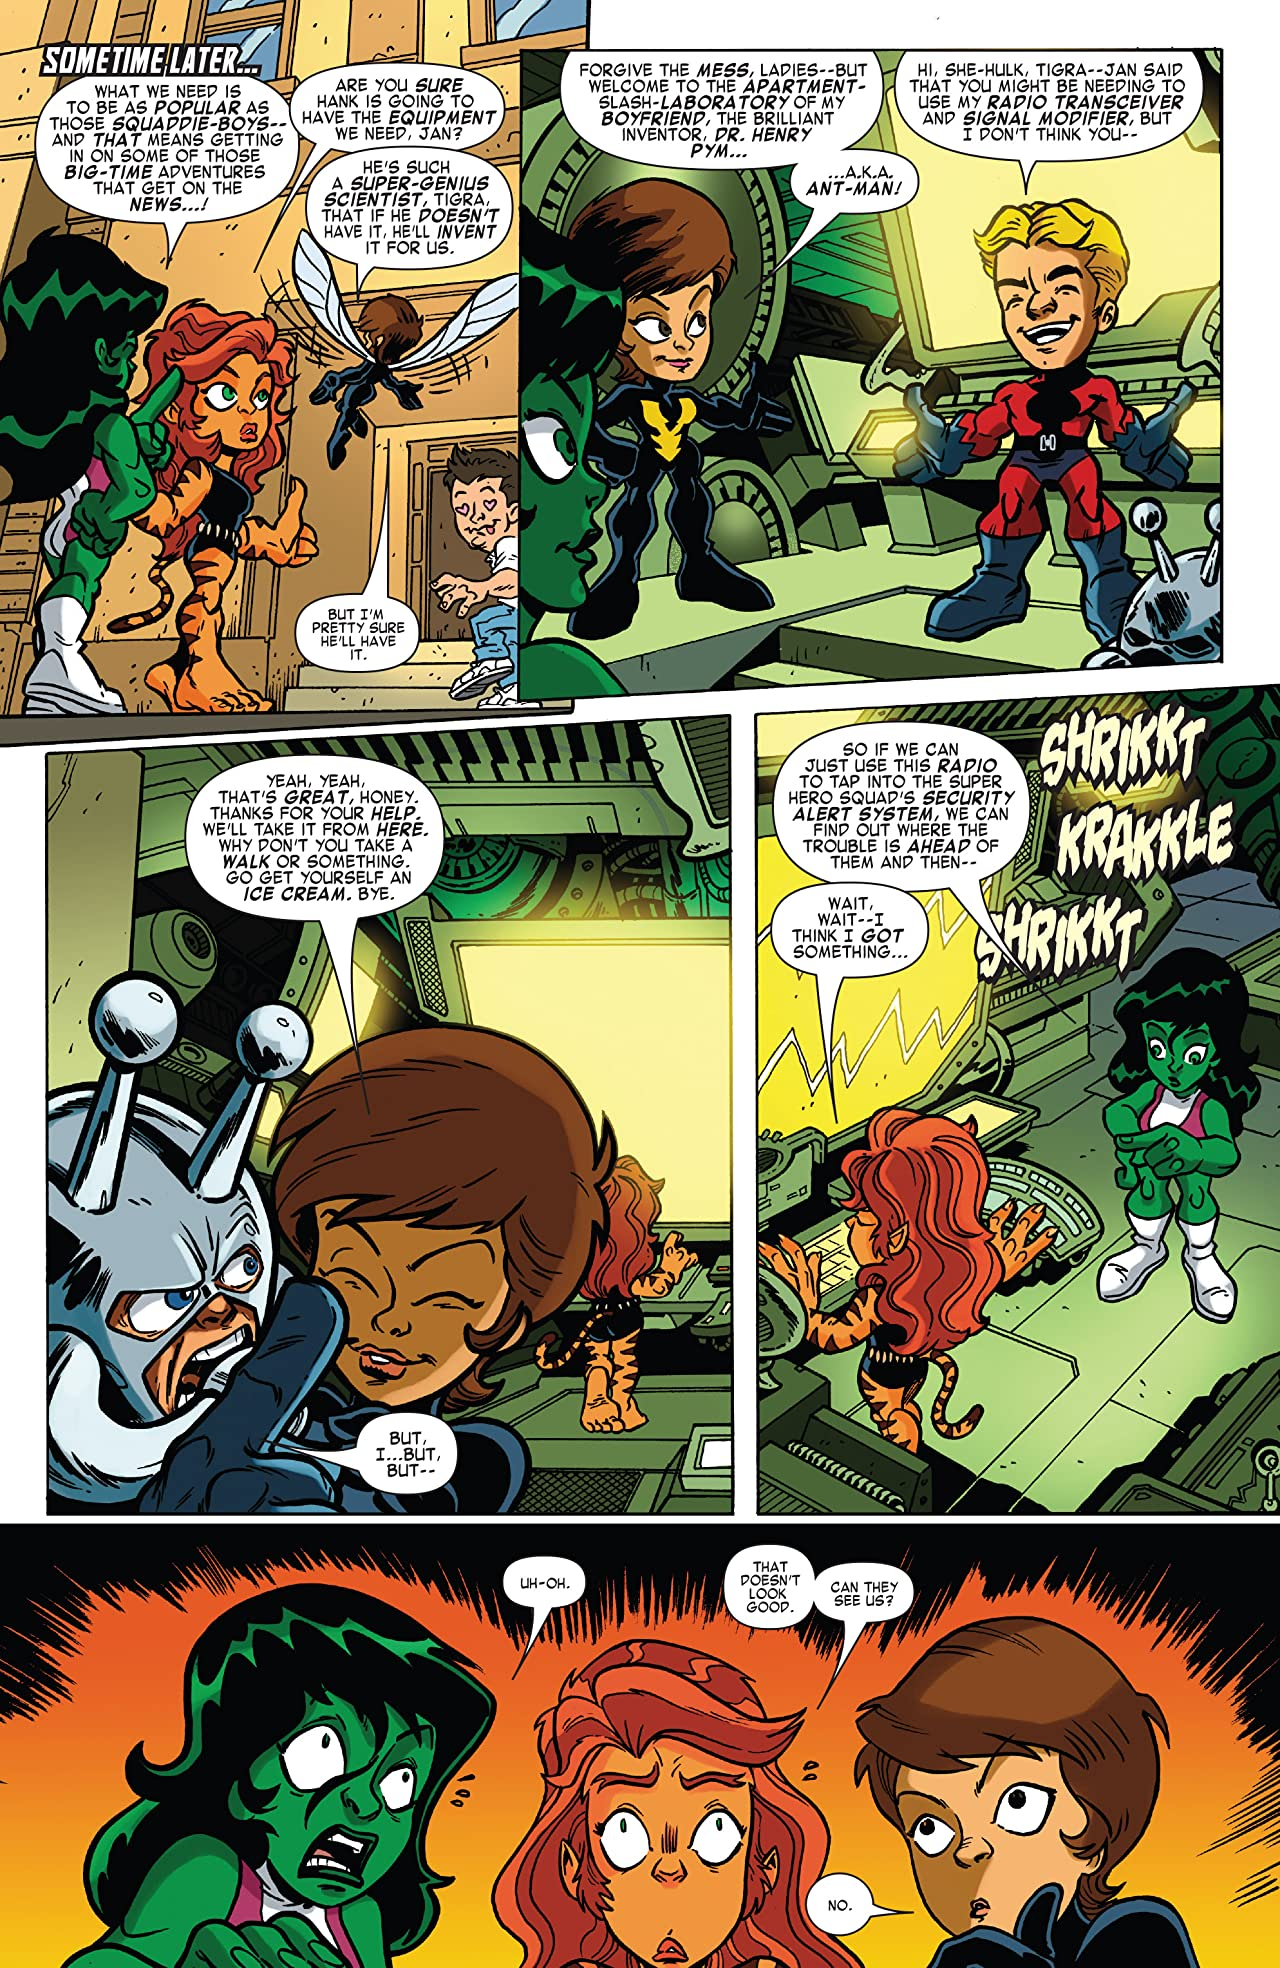 Super Hero Squad (2010) #11